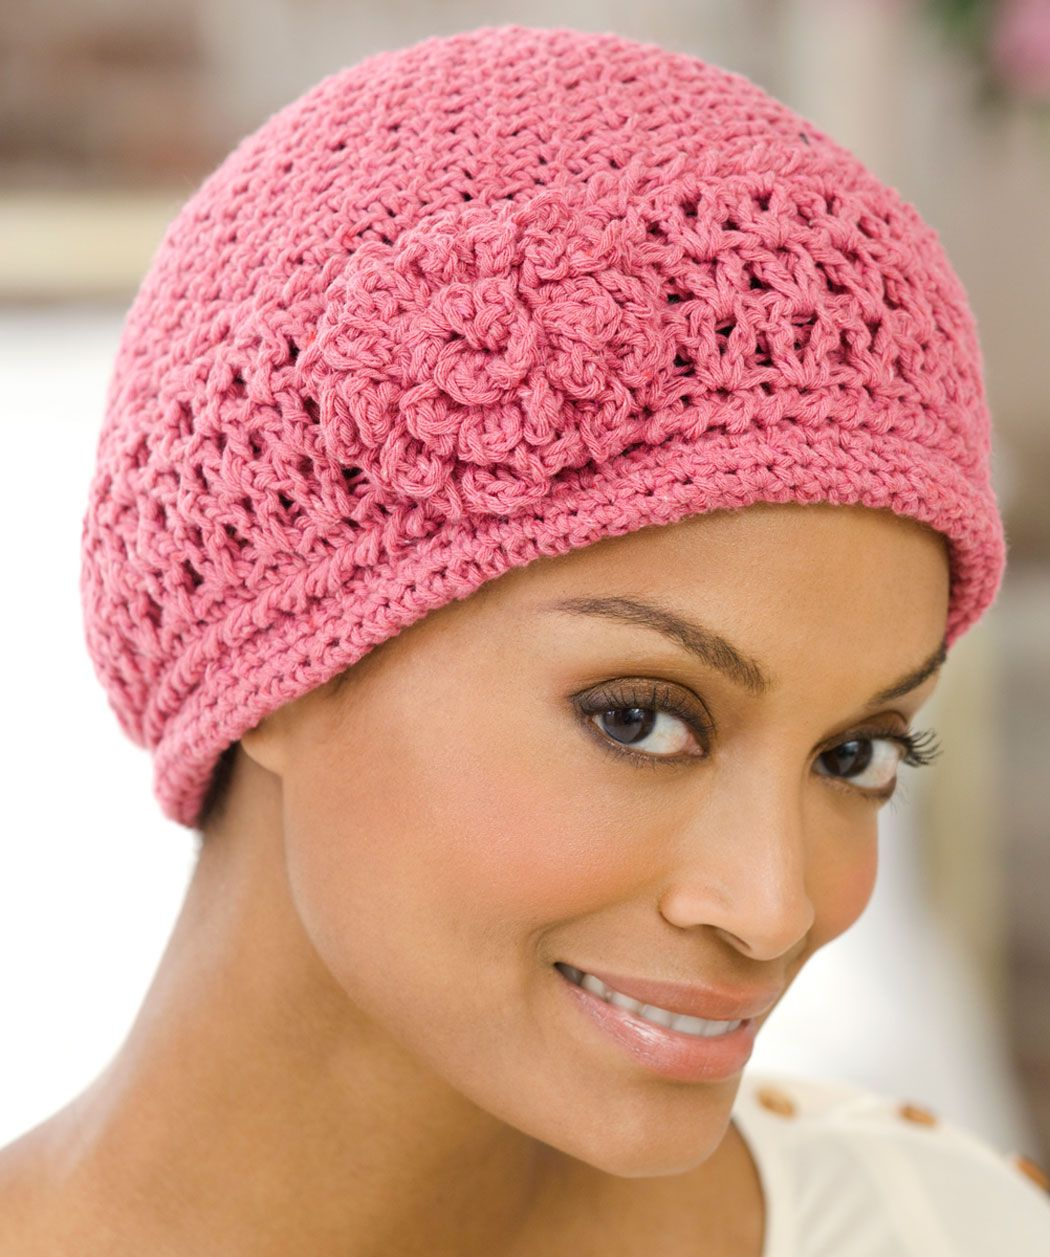 Red Heart® Chemo Cap  crochet  pattern  breastcancerawareness ... 2446e775042